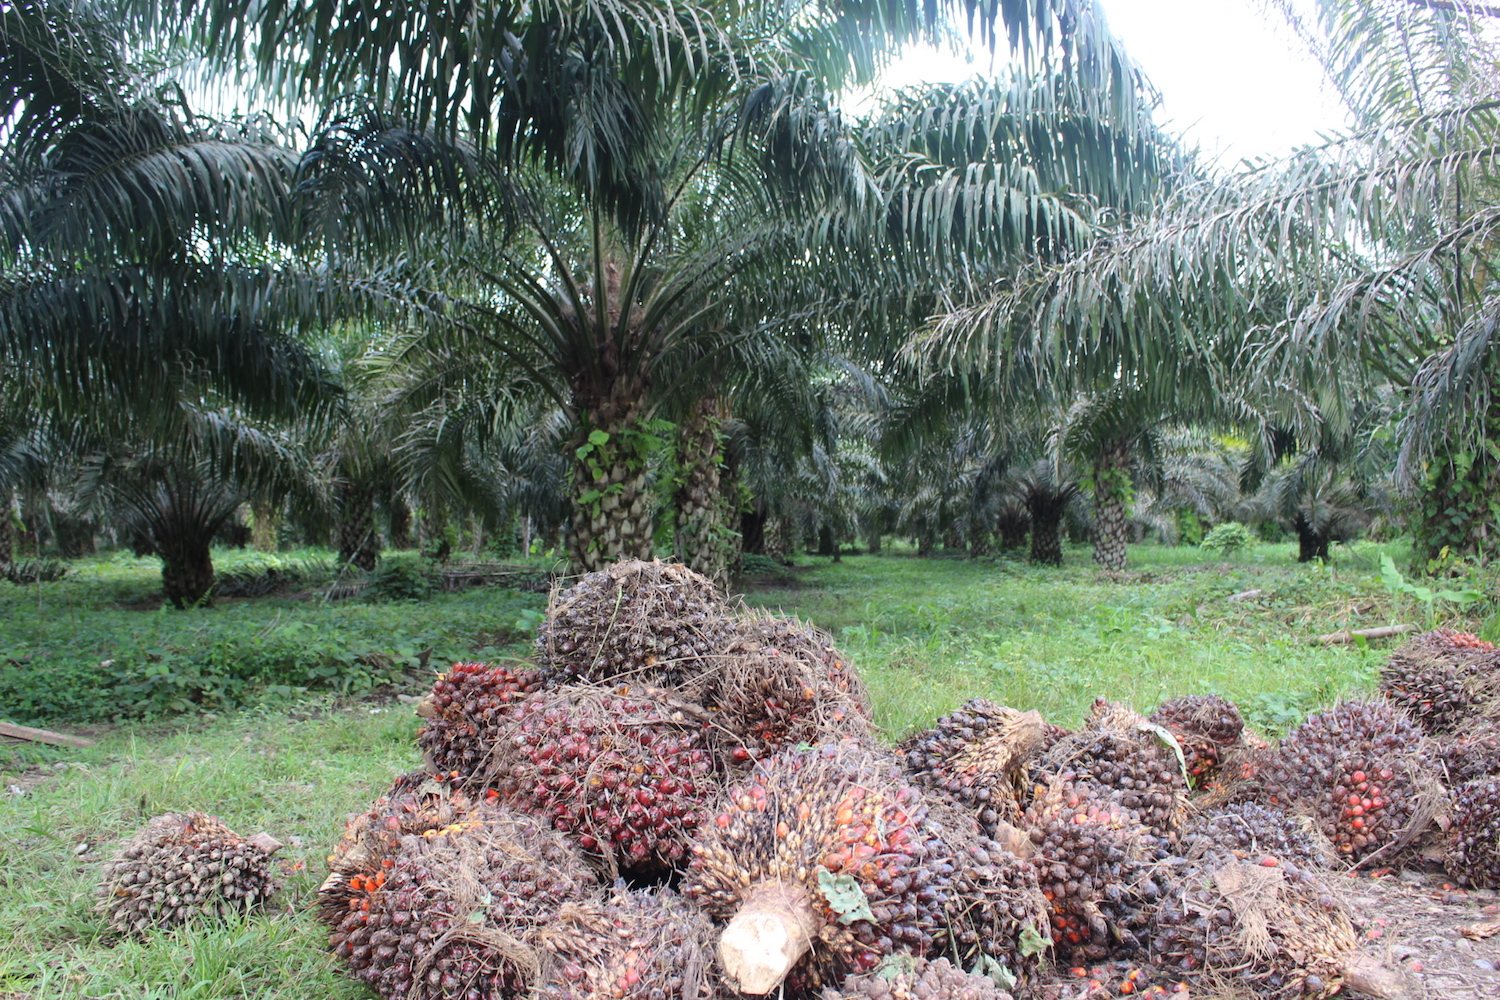 Harvested oil palm fruit awaits processing on the side of the road to Puerto Providencia. Photo by Daniela Aguilar